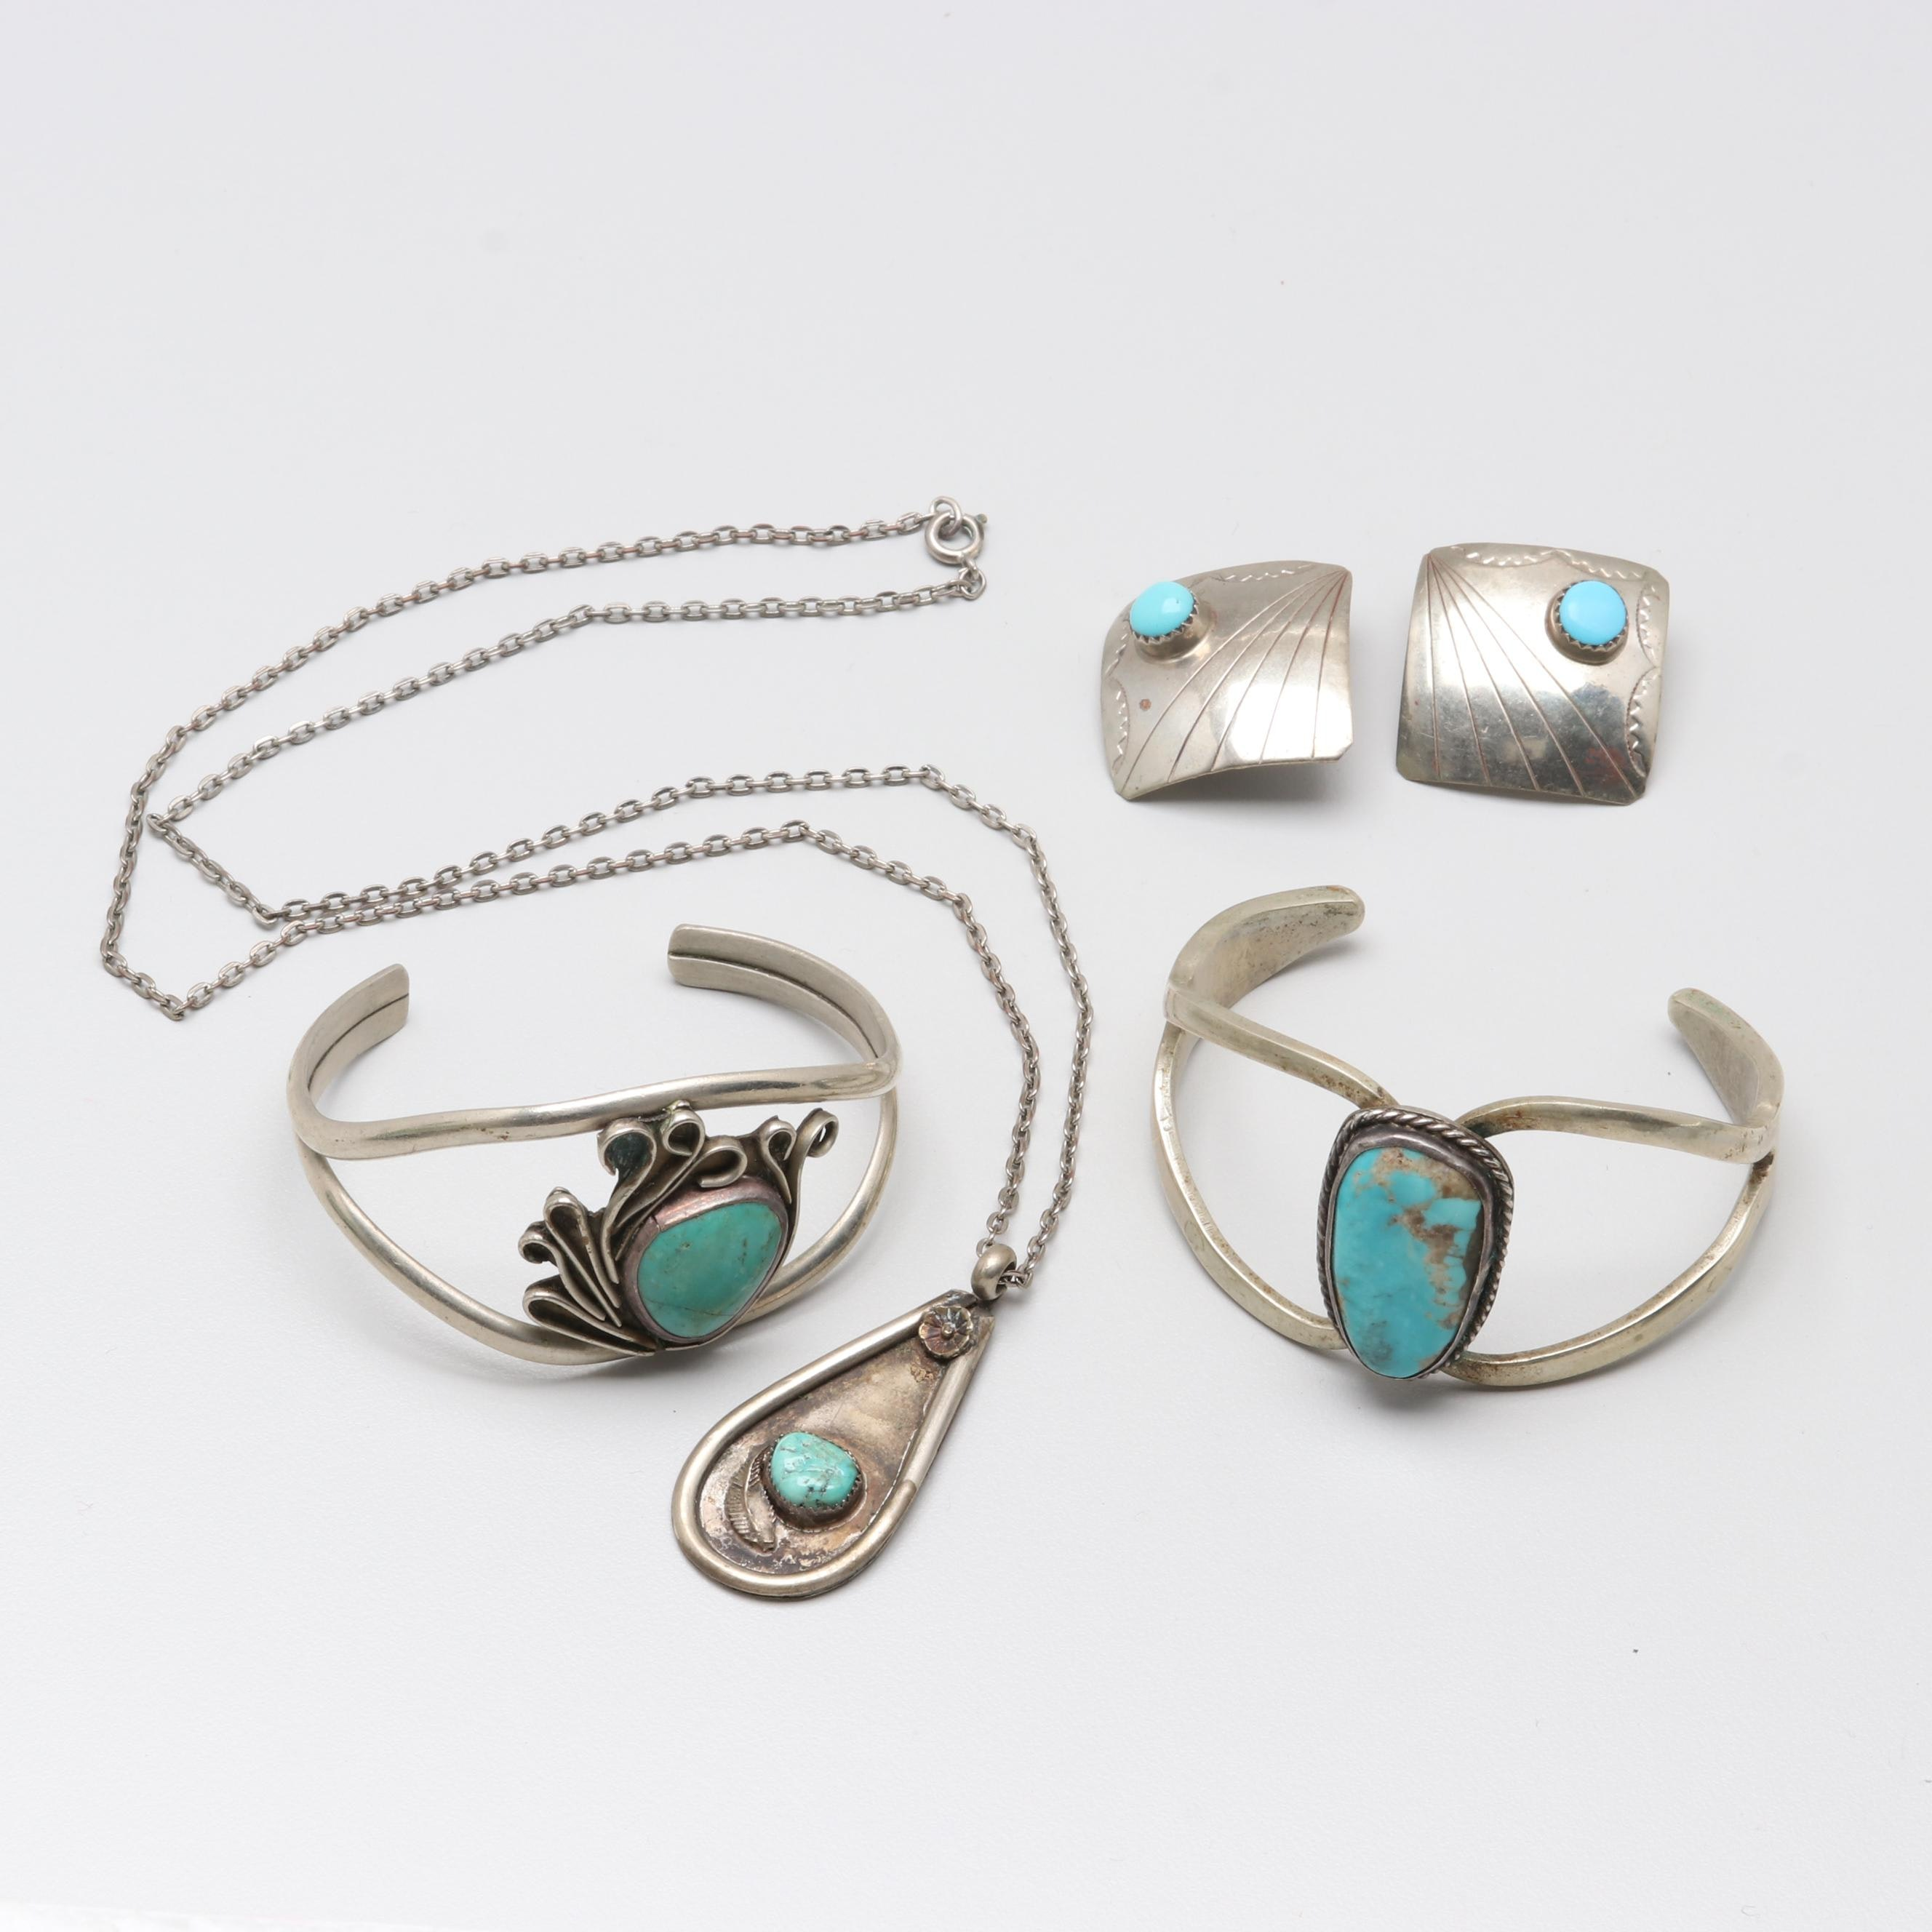 Silver Tone Turquoise Earrings, Necklace, and Bracelet Selection